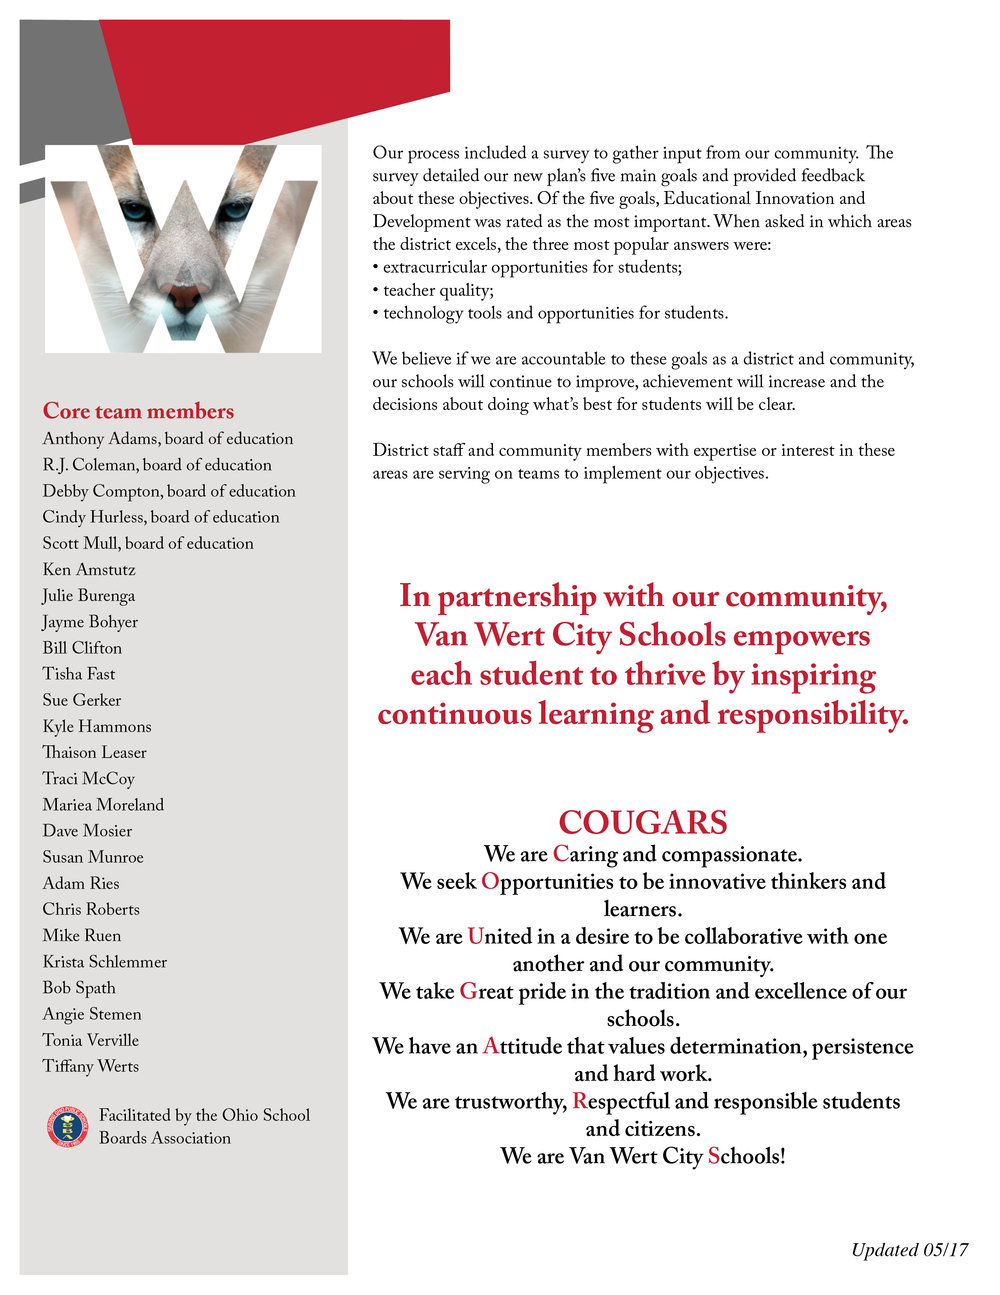 Page two of the Van Wert City Schools Strategic Plan explains the process in which it was developed, as well as the district's mission, goals, and the Strategic Planning committee members.